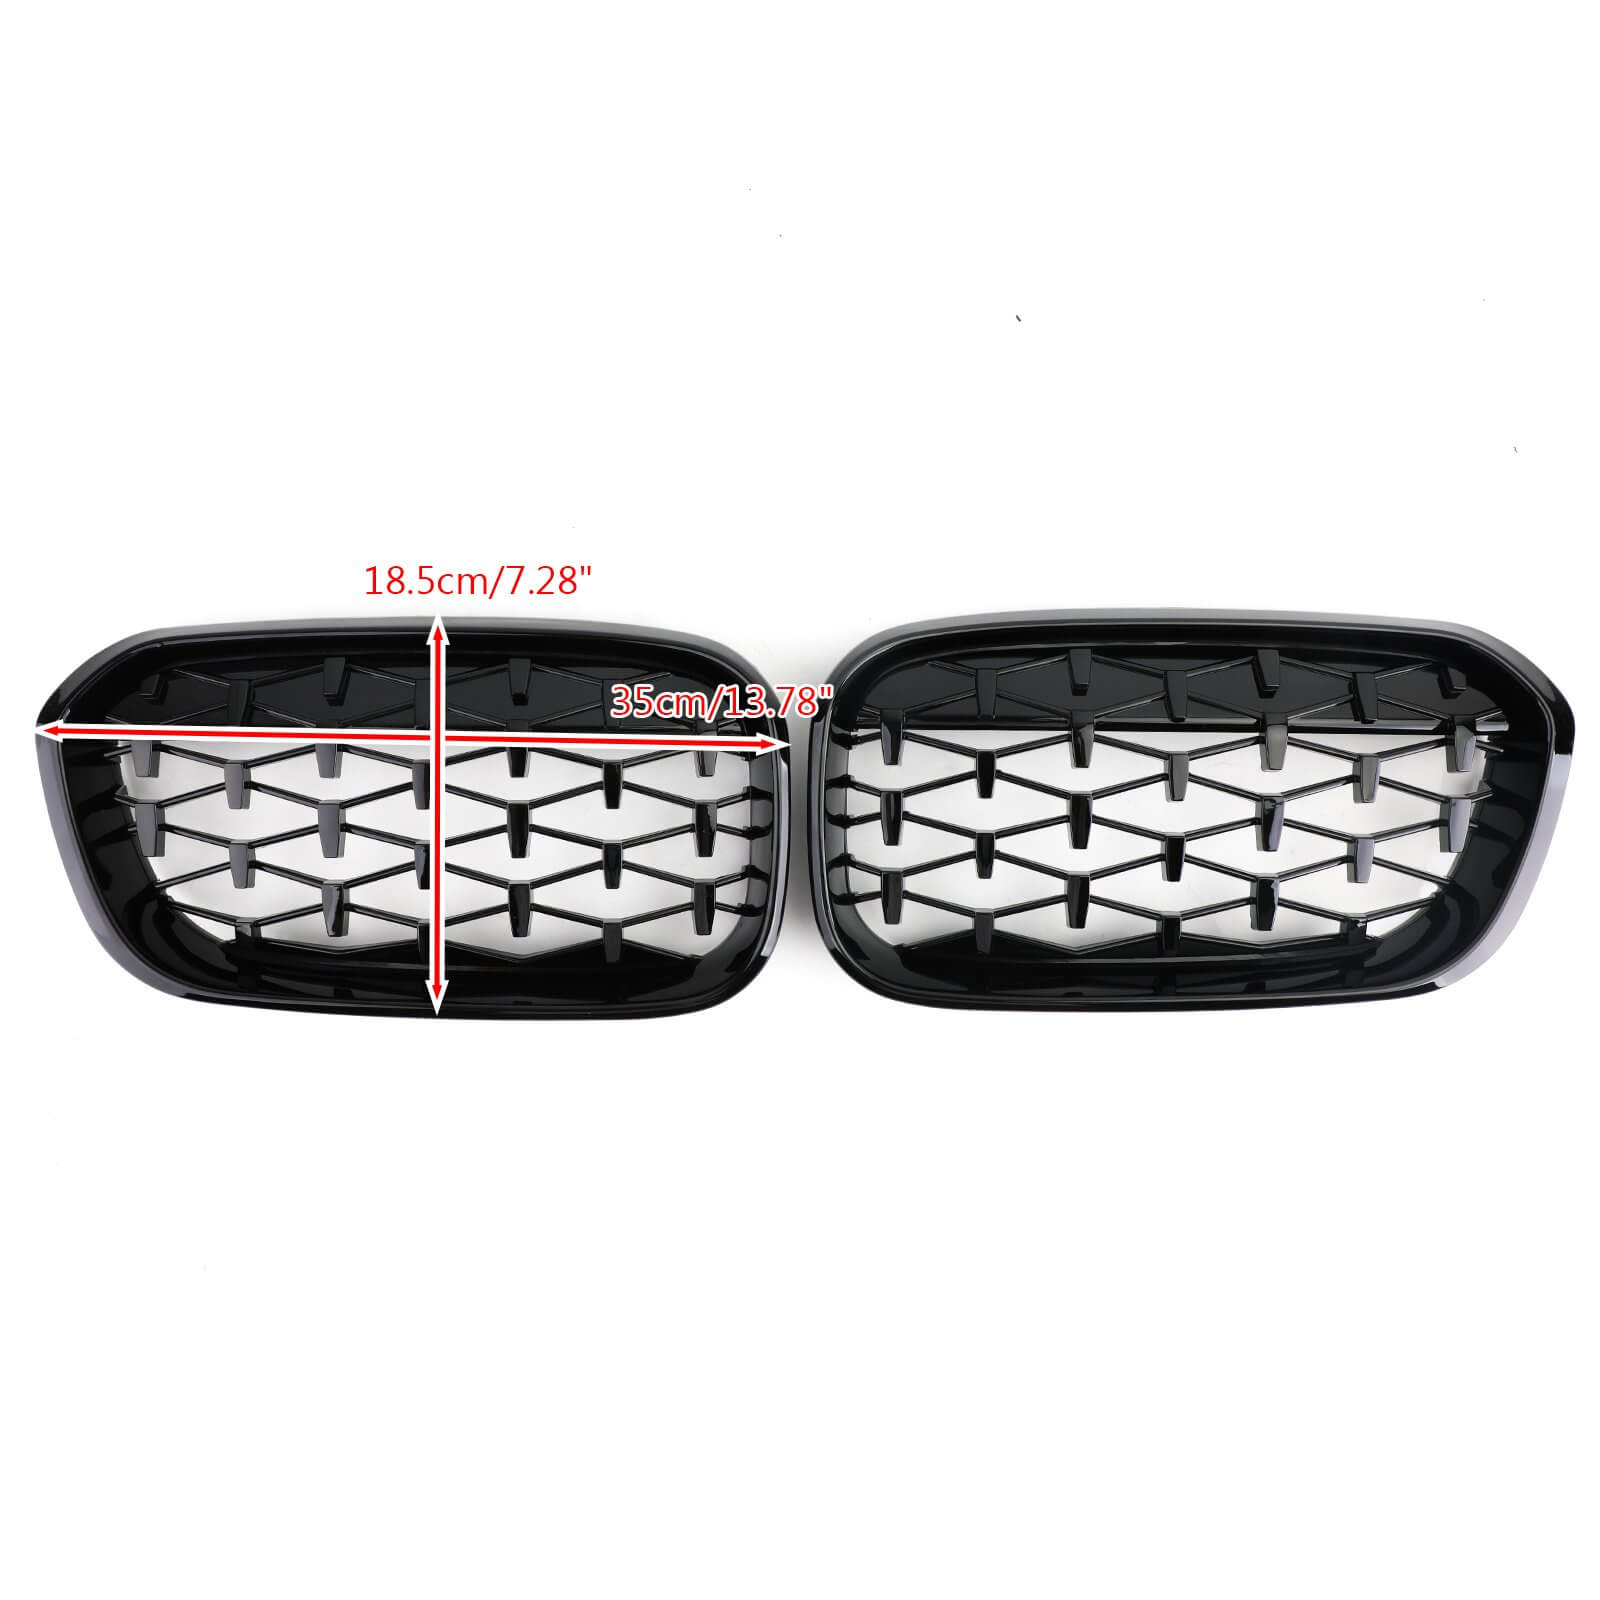 Meteor Black Front Kidney Grille For2015-2017 BMW 1 Series F20/F21 Generic